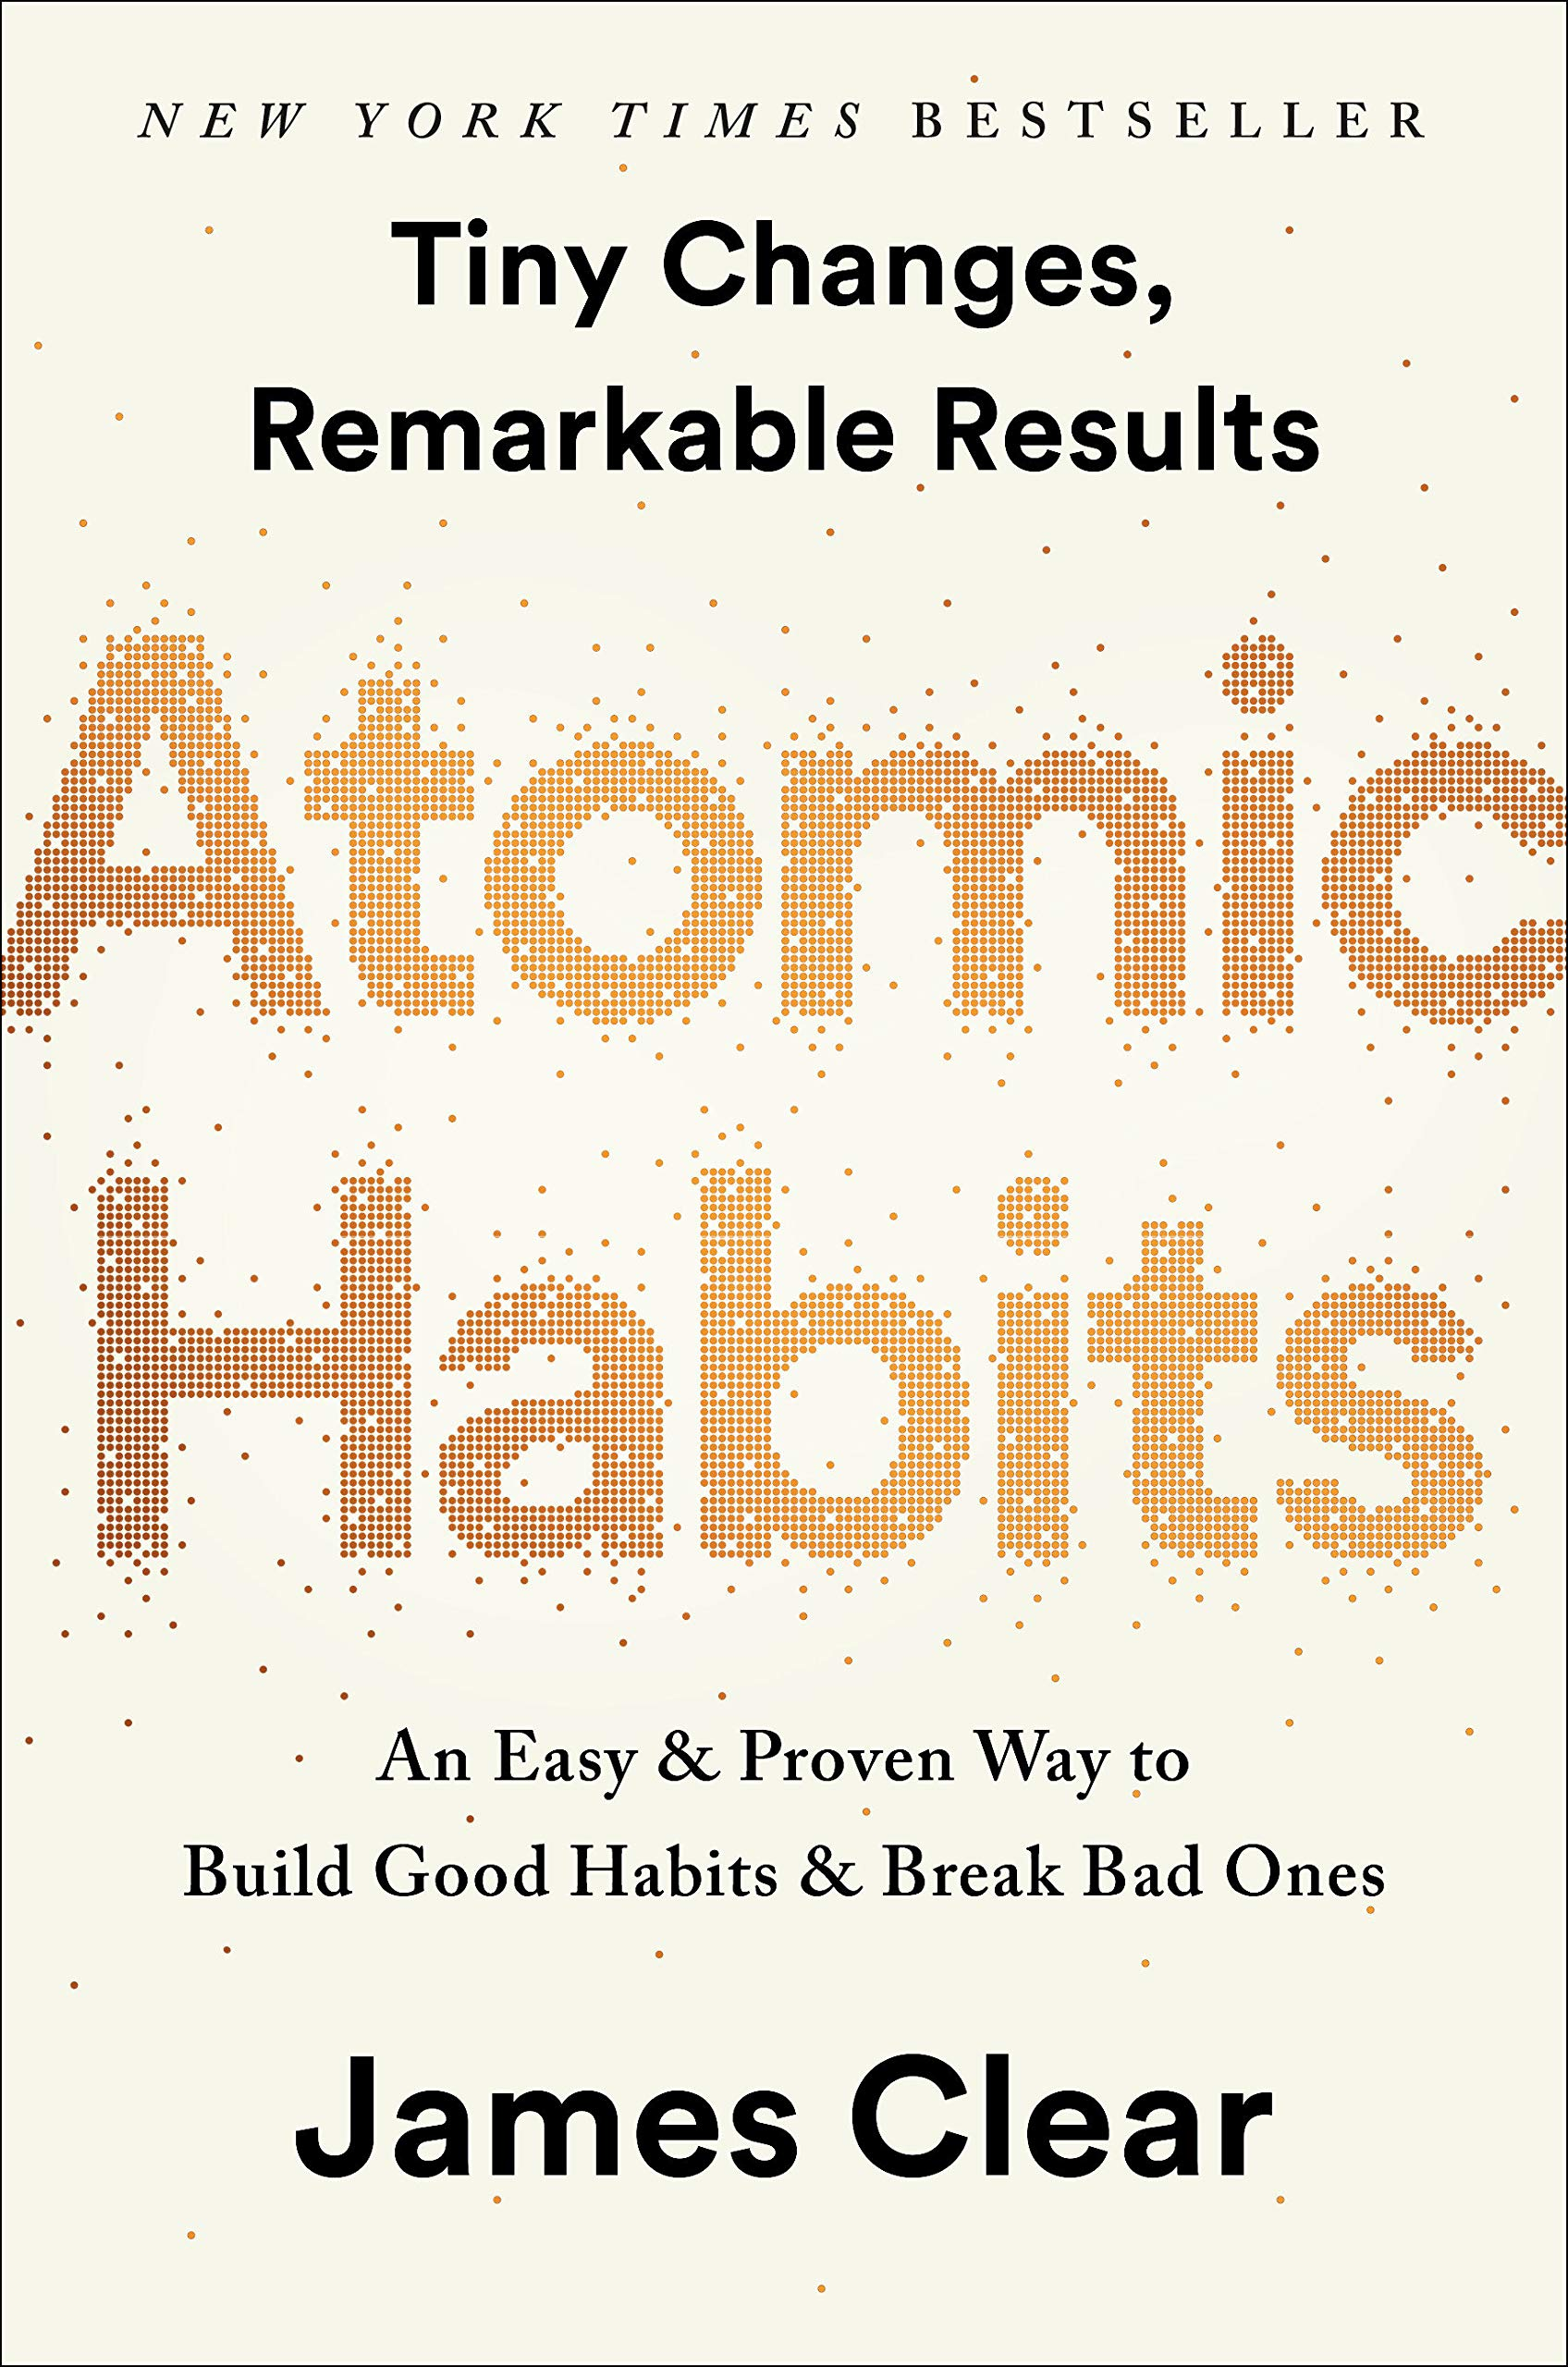 914axpnsYZL - Atomic Habits: An Easy & Proven Way to Build Good Habits & Break Bad Ones